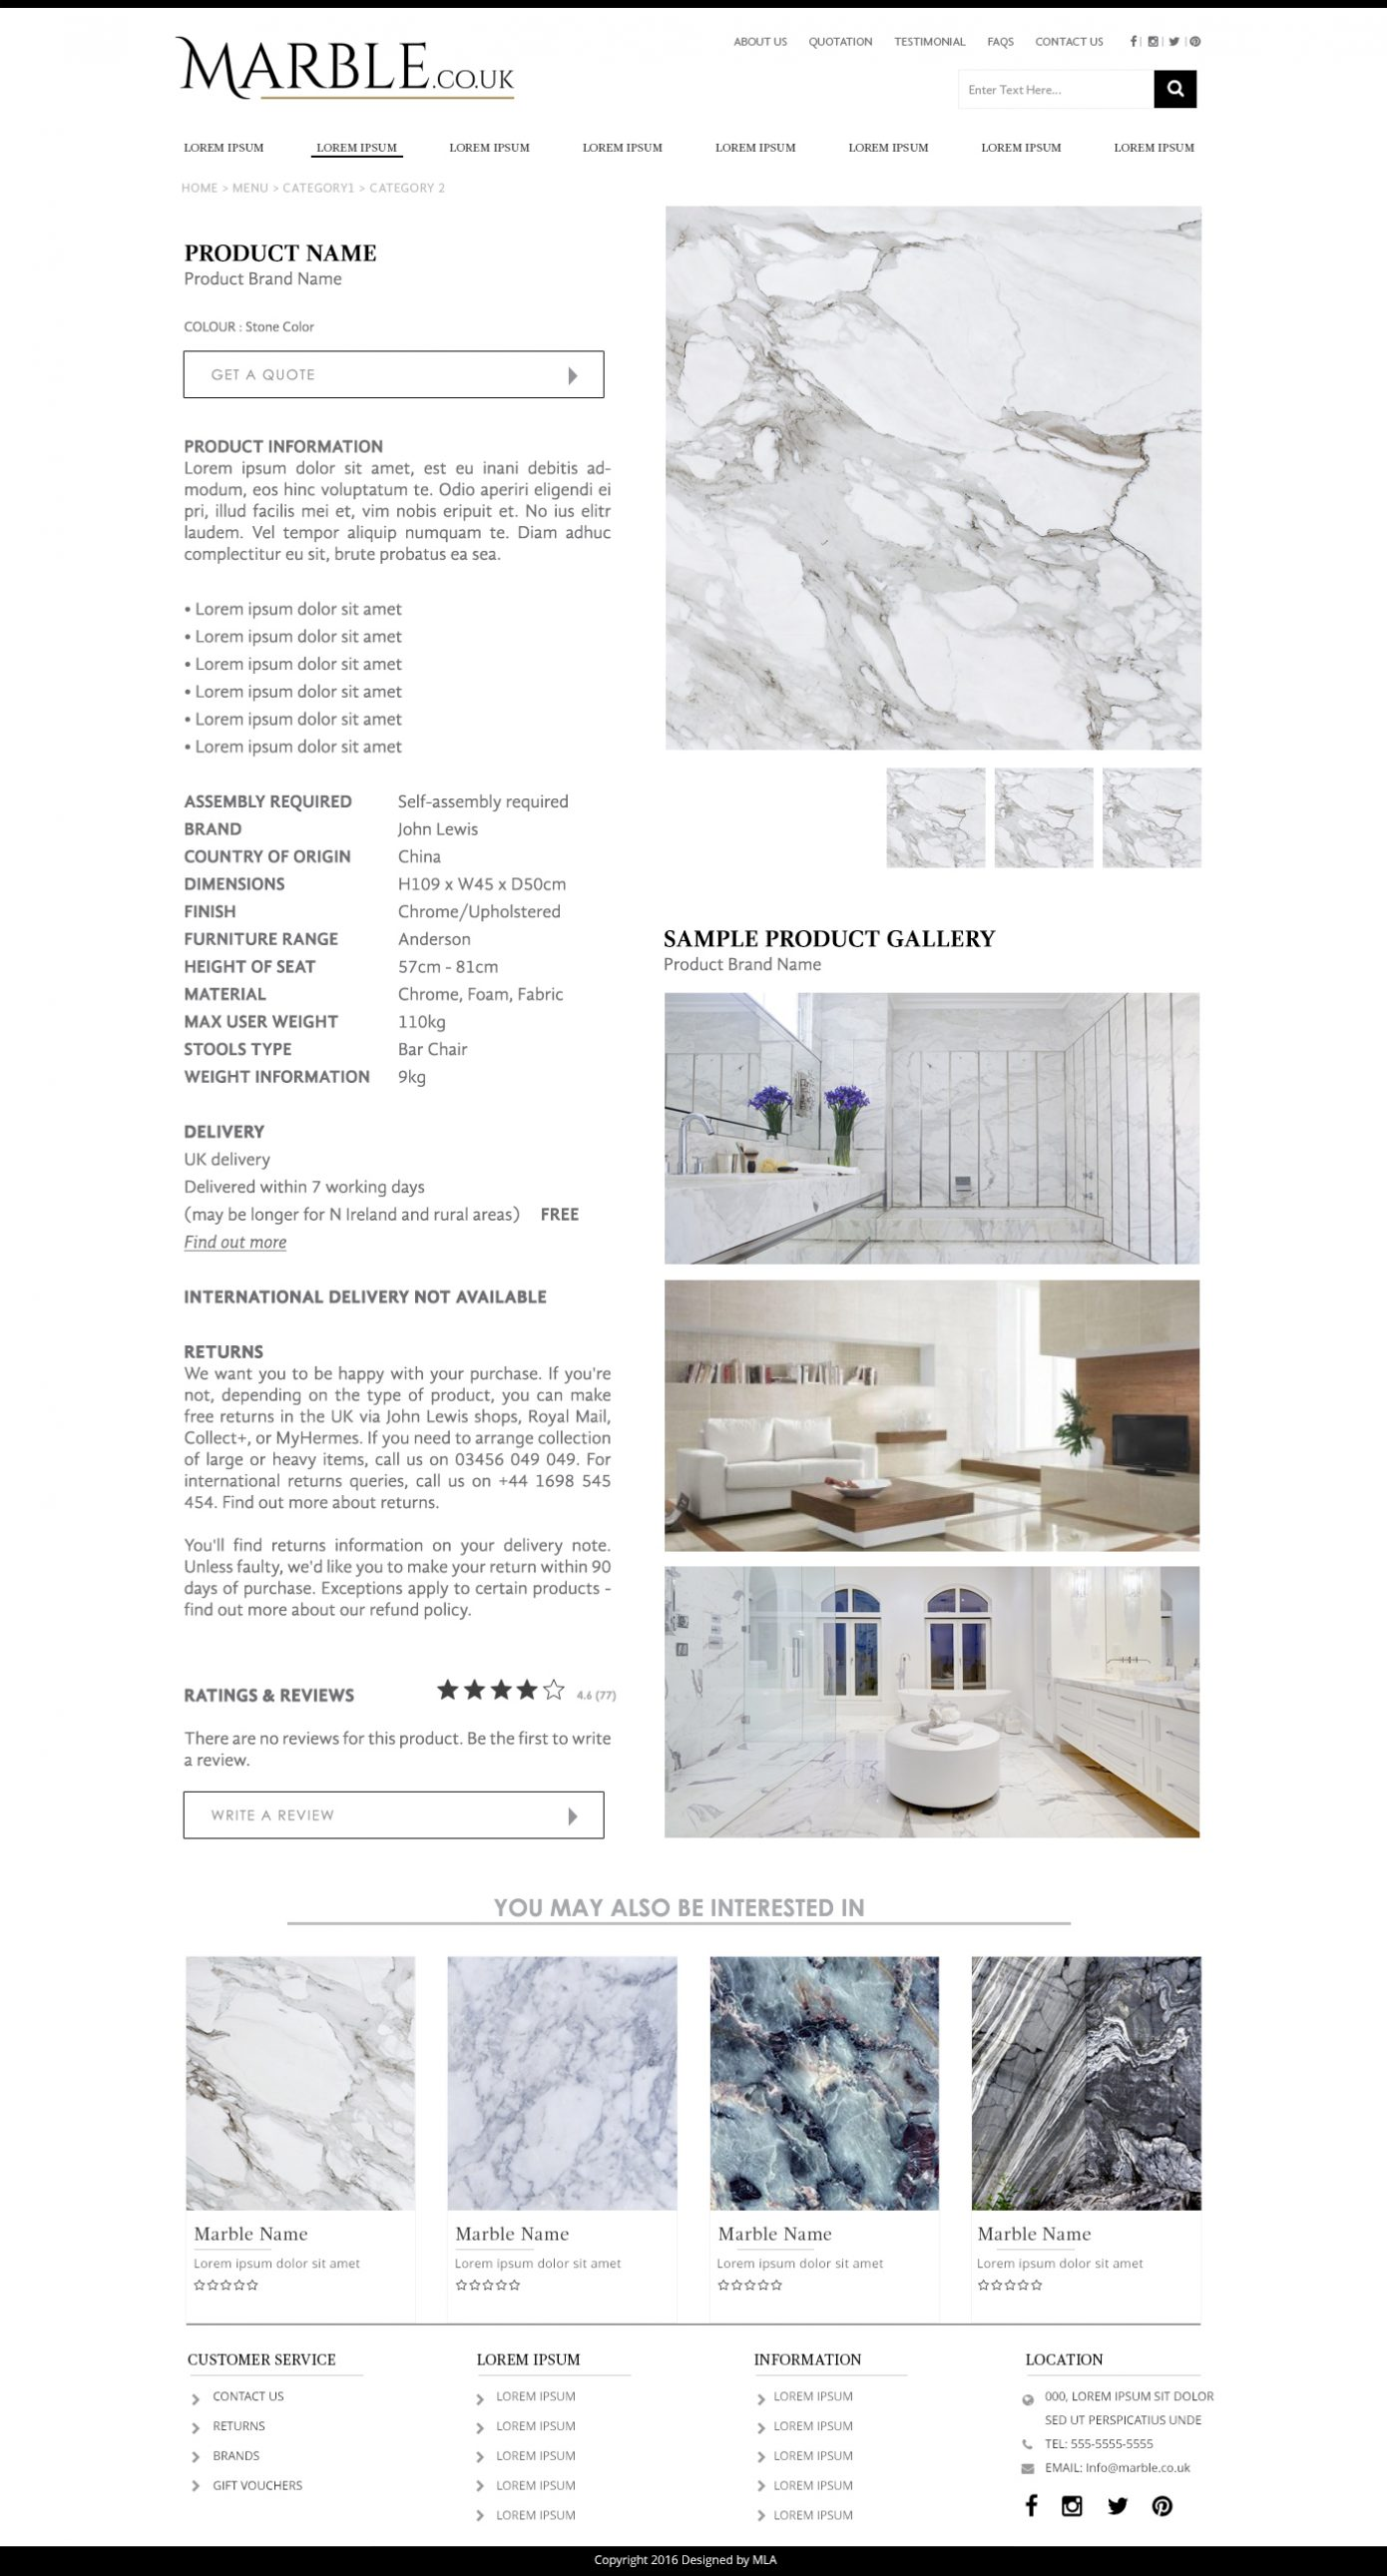 MarbleCoUk Product page design - Website design London - web design agency london